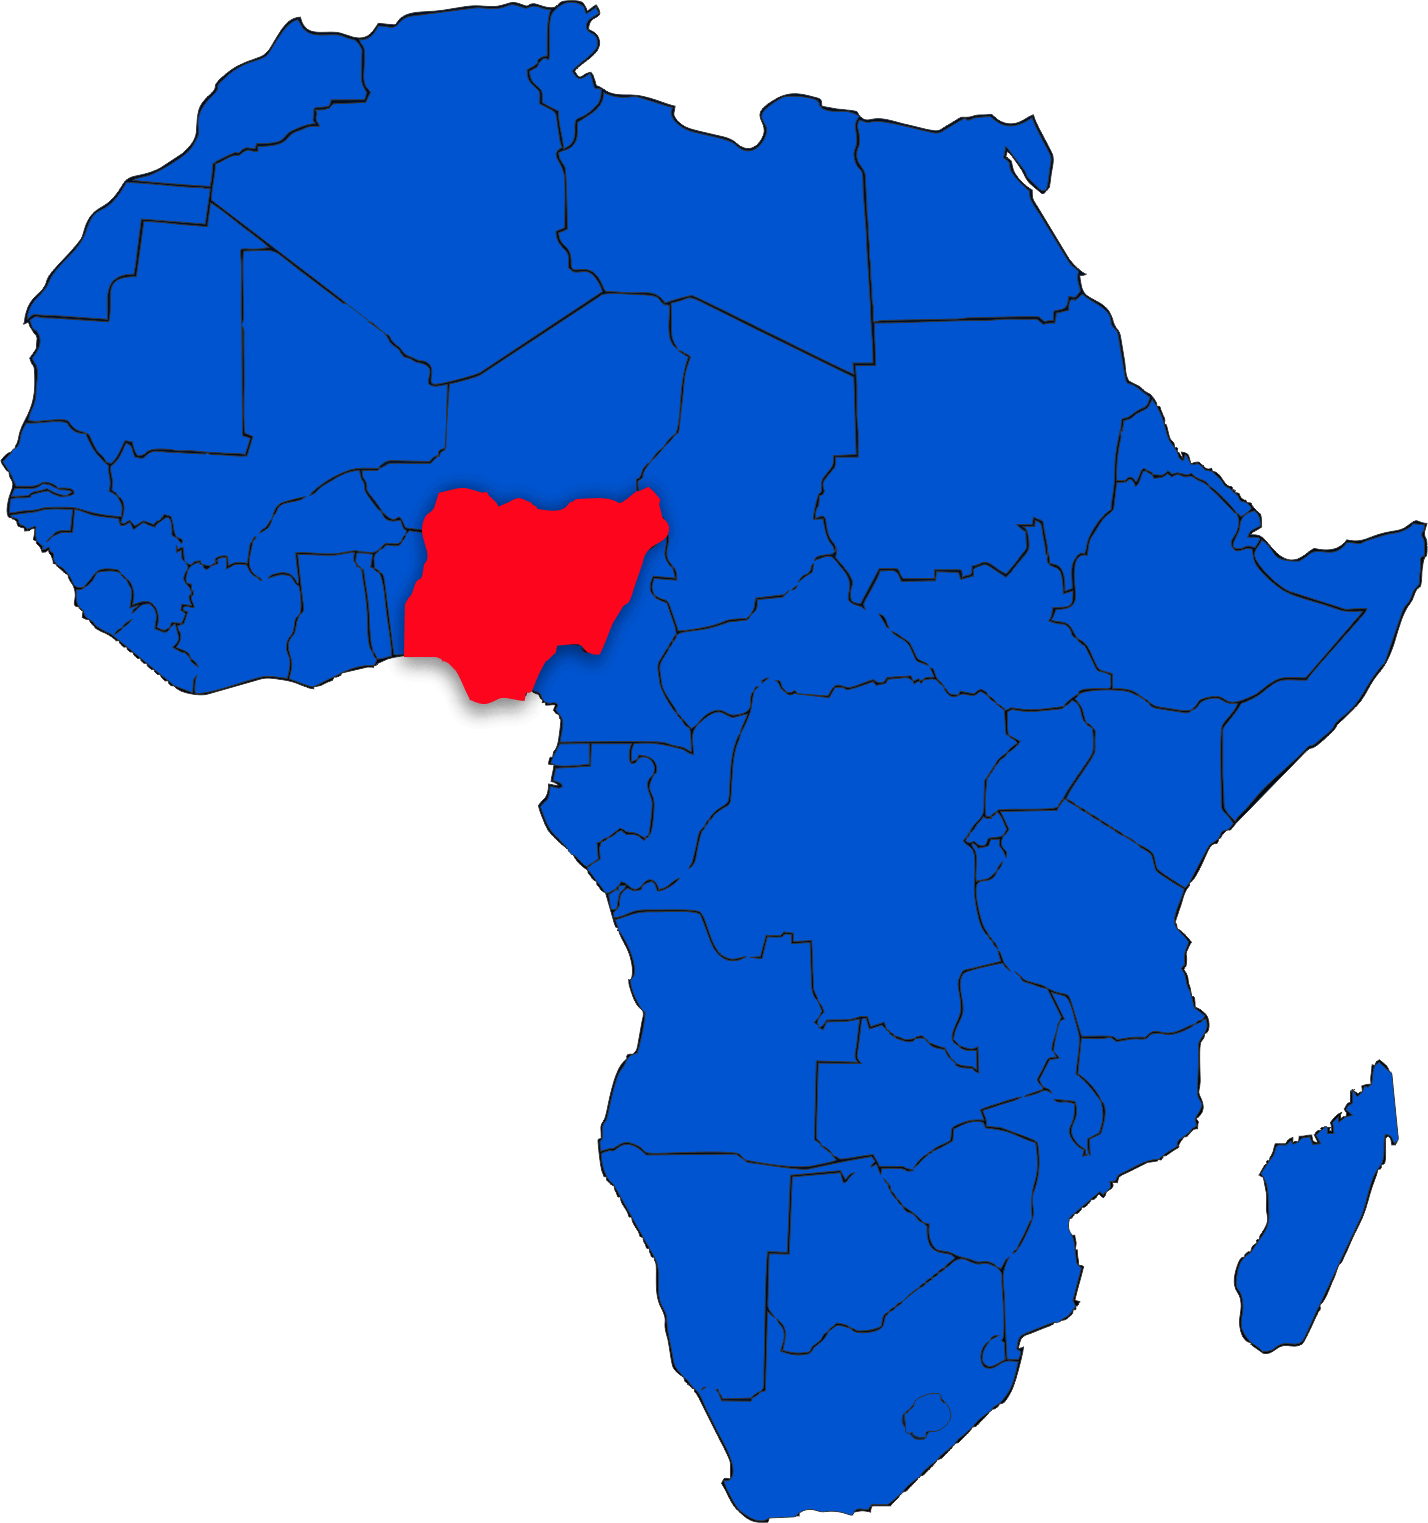 Africa_map-1